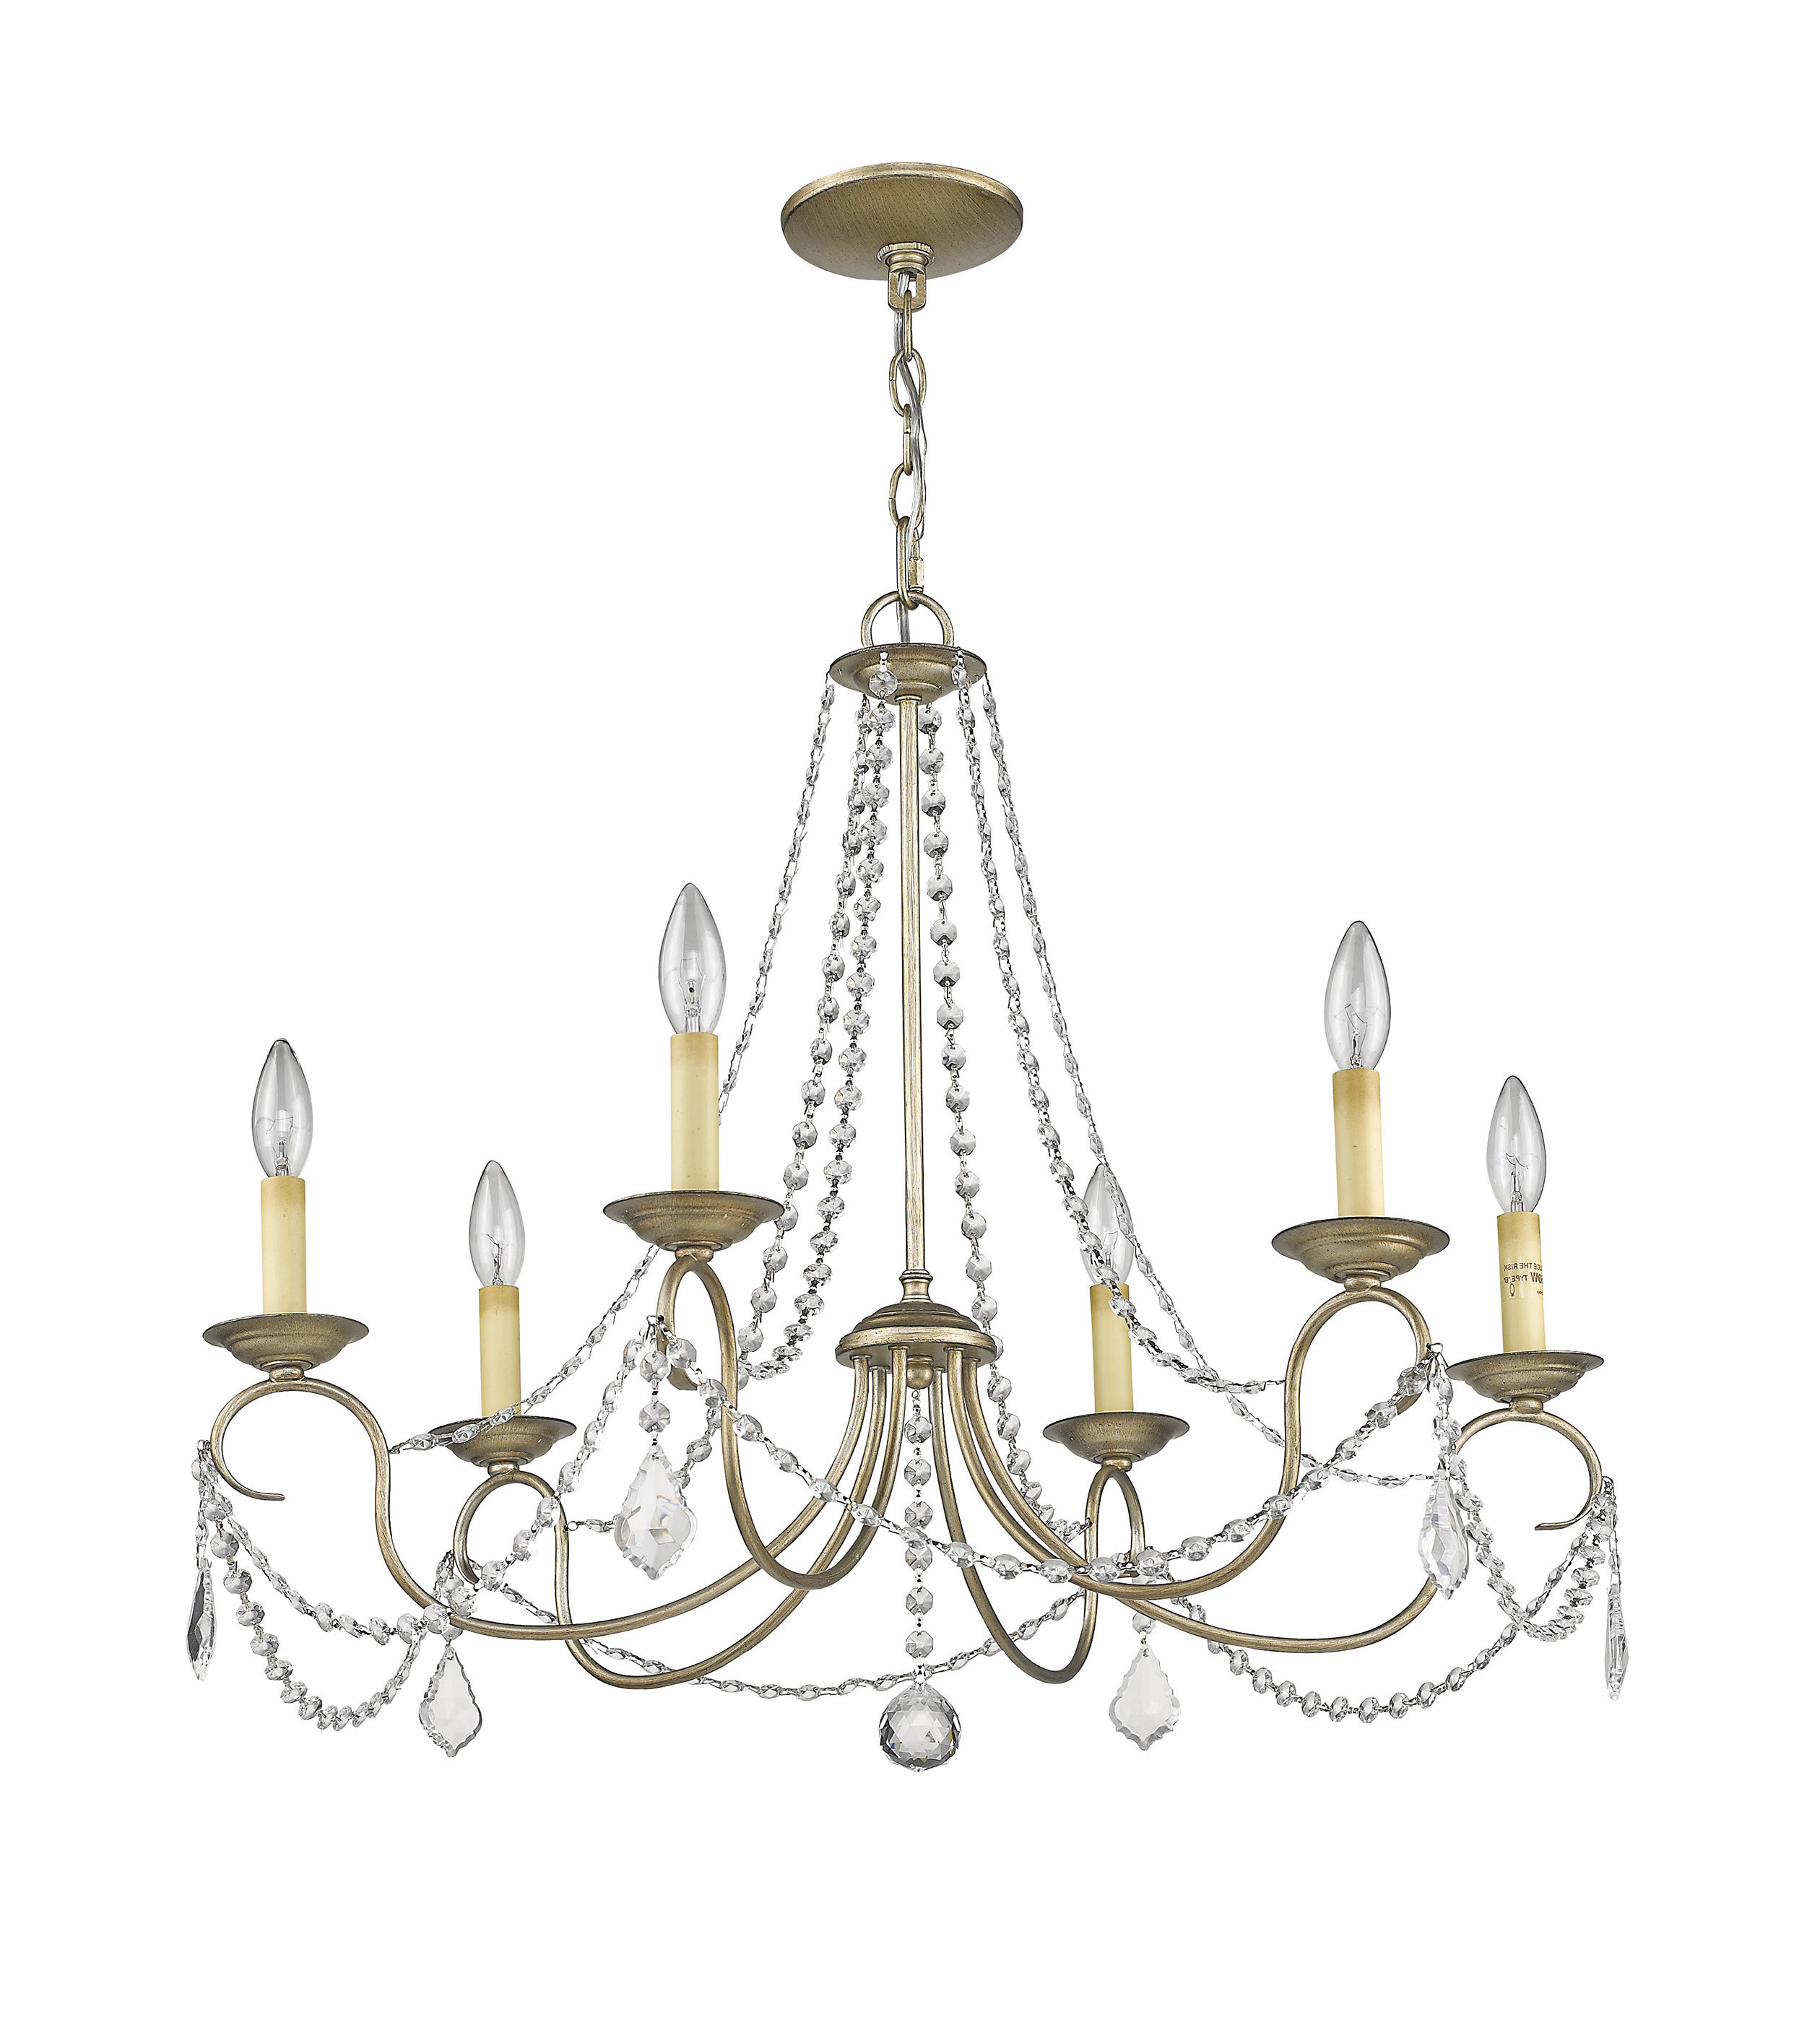 Diaz 6 Light Candle Style Chandeliers Pertaining To 2020 Devana 6 Light Candle Style Chandelier (View 4 of 20)